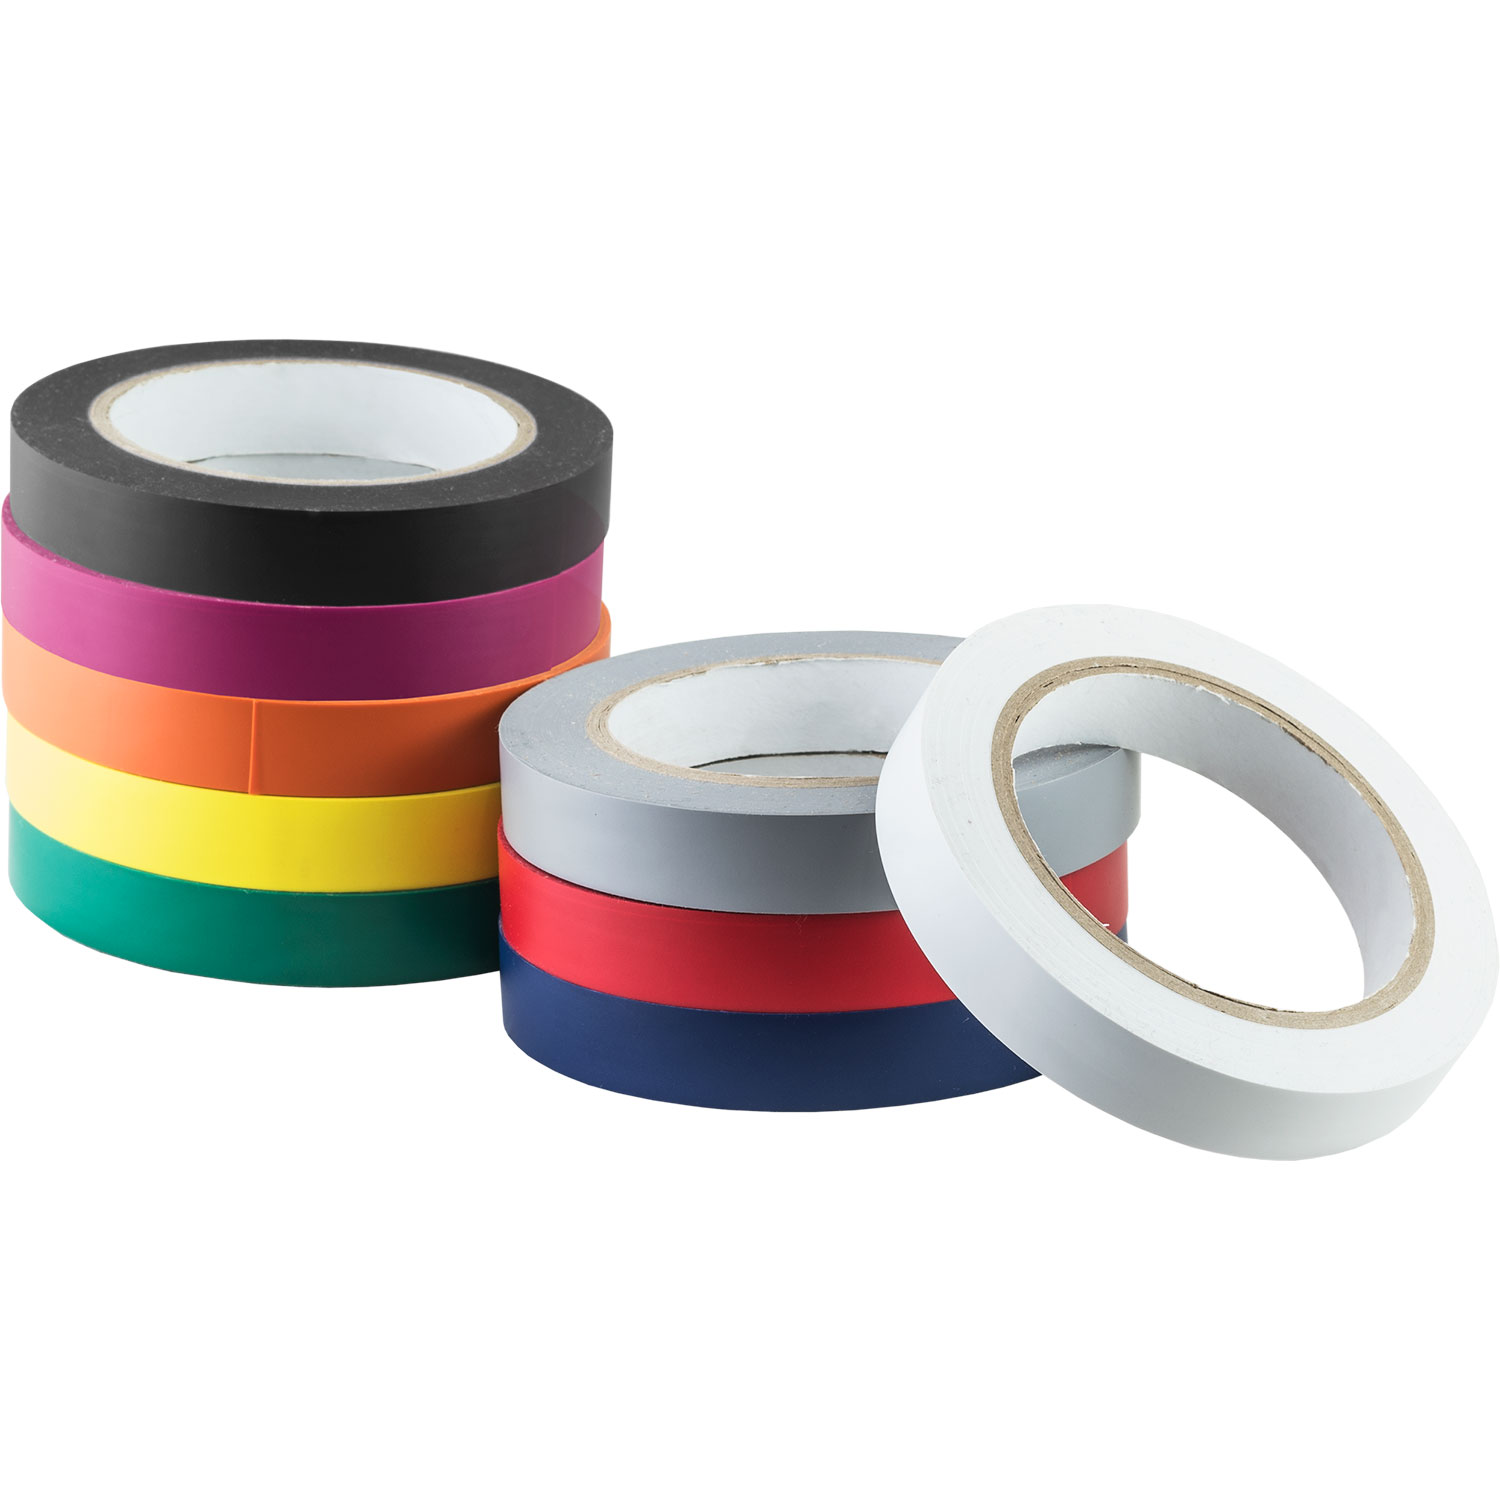 "Shot Tape 3/4"" Wide Stick Tape"